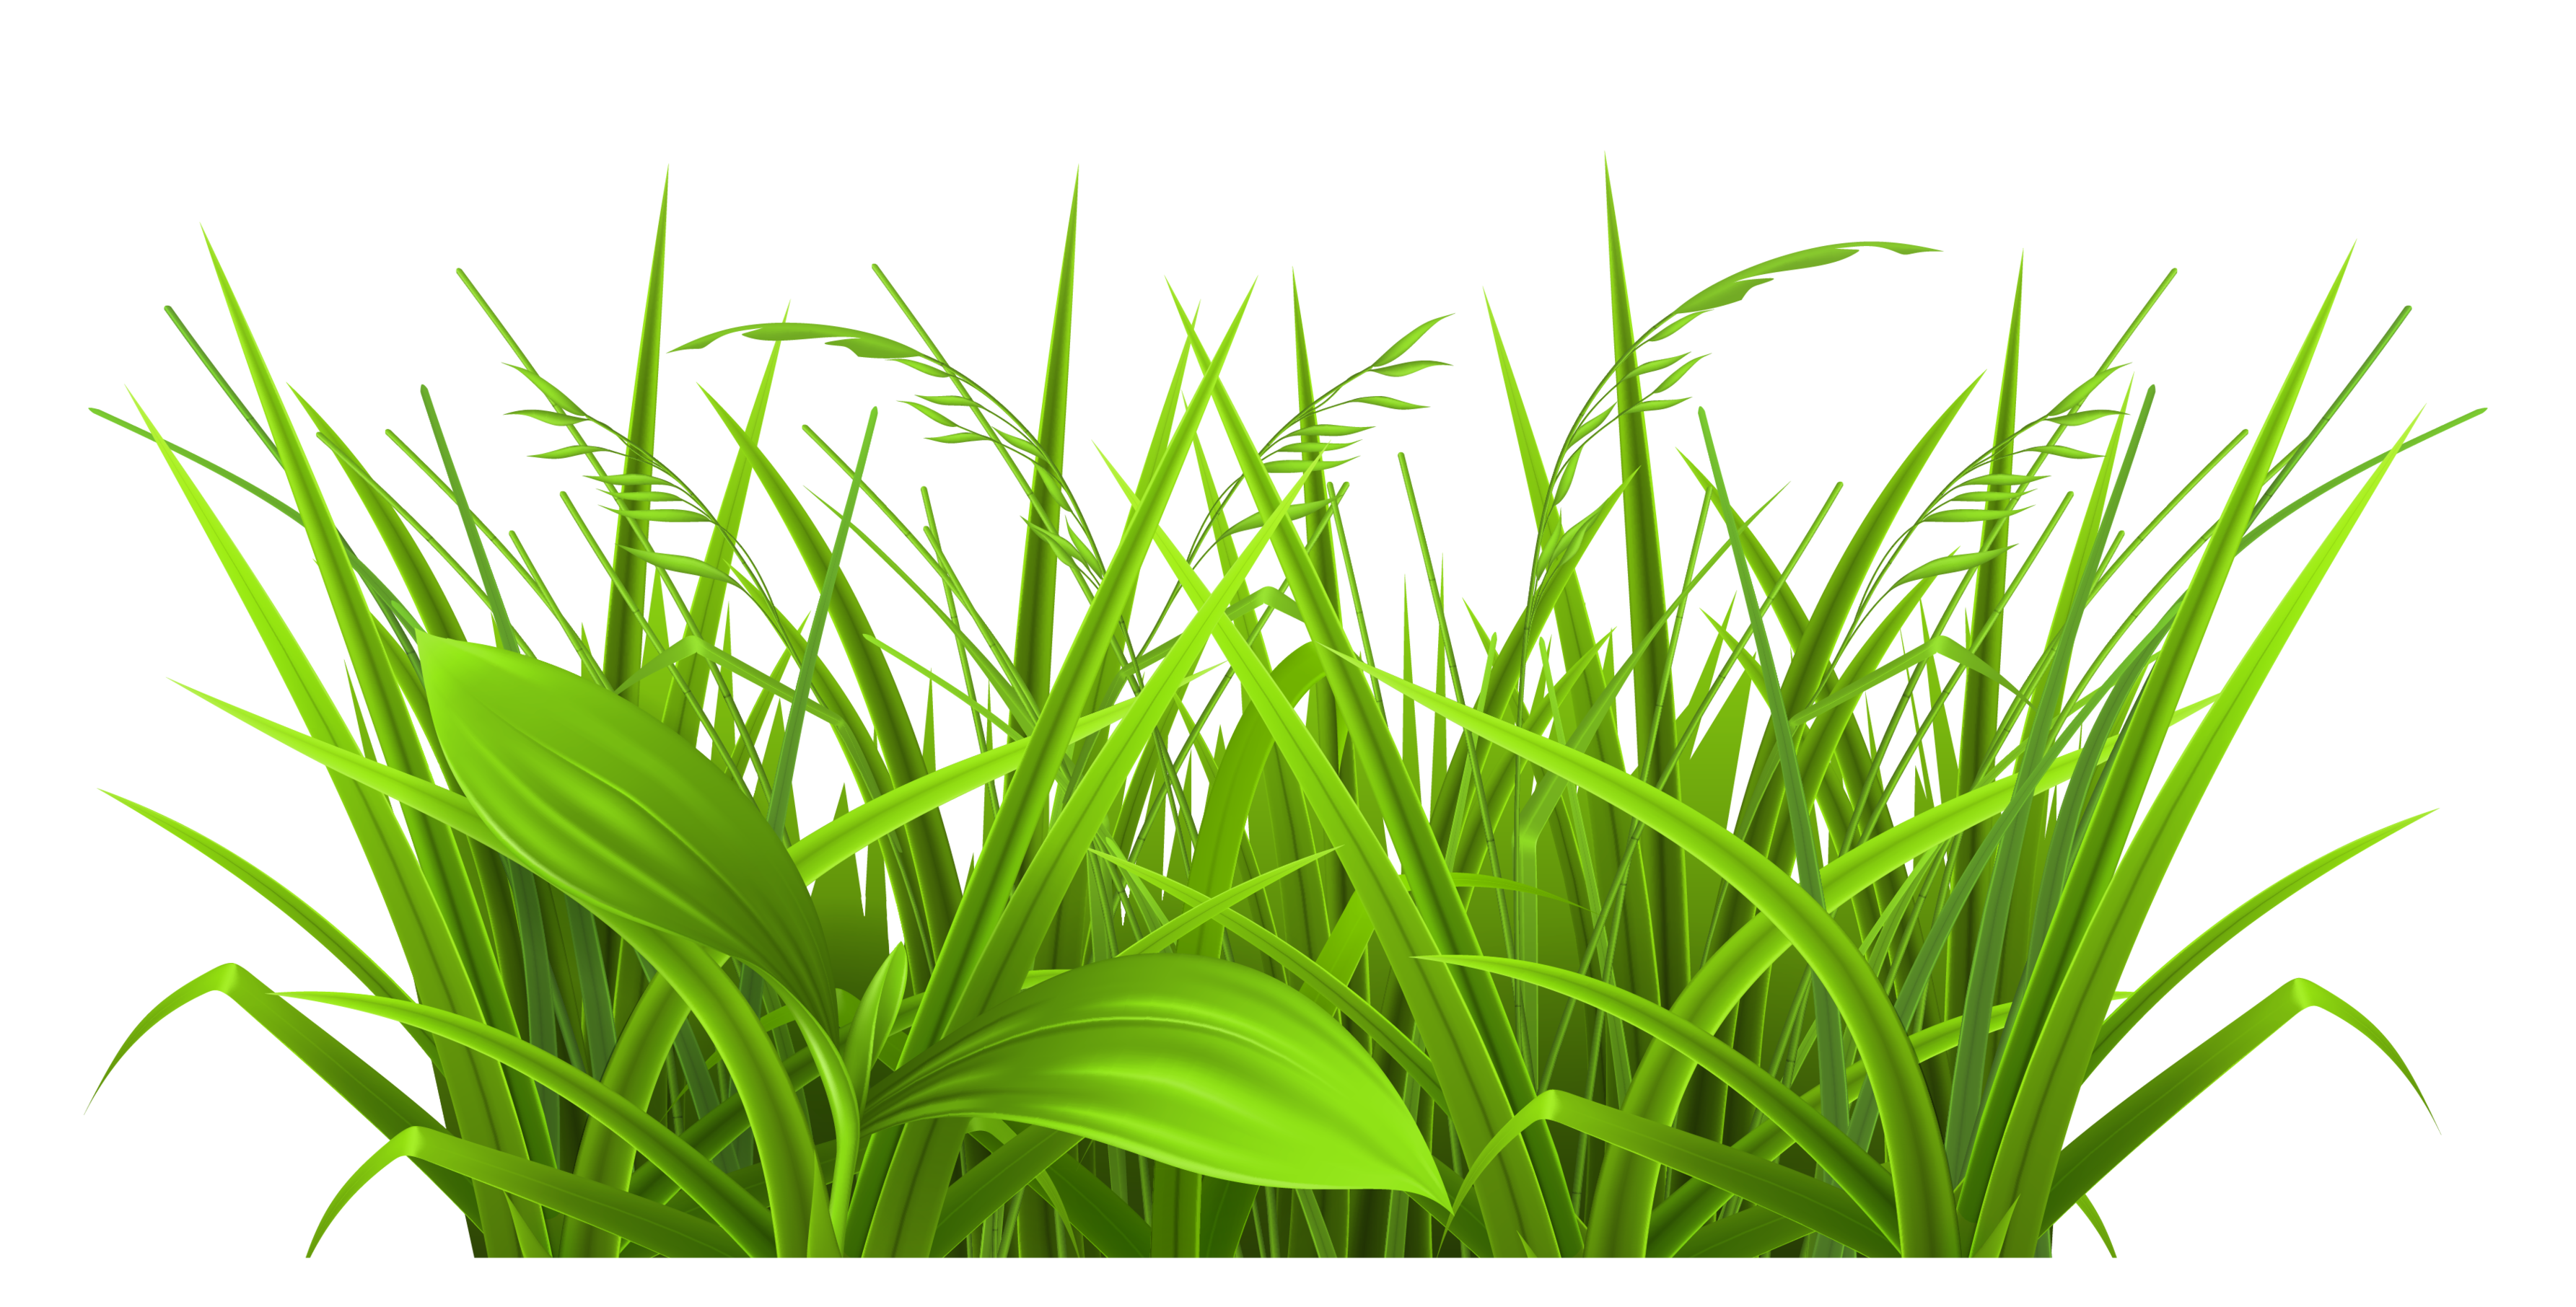 Silhouette free at getdrawings. Outline clipart grass